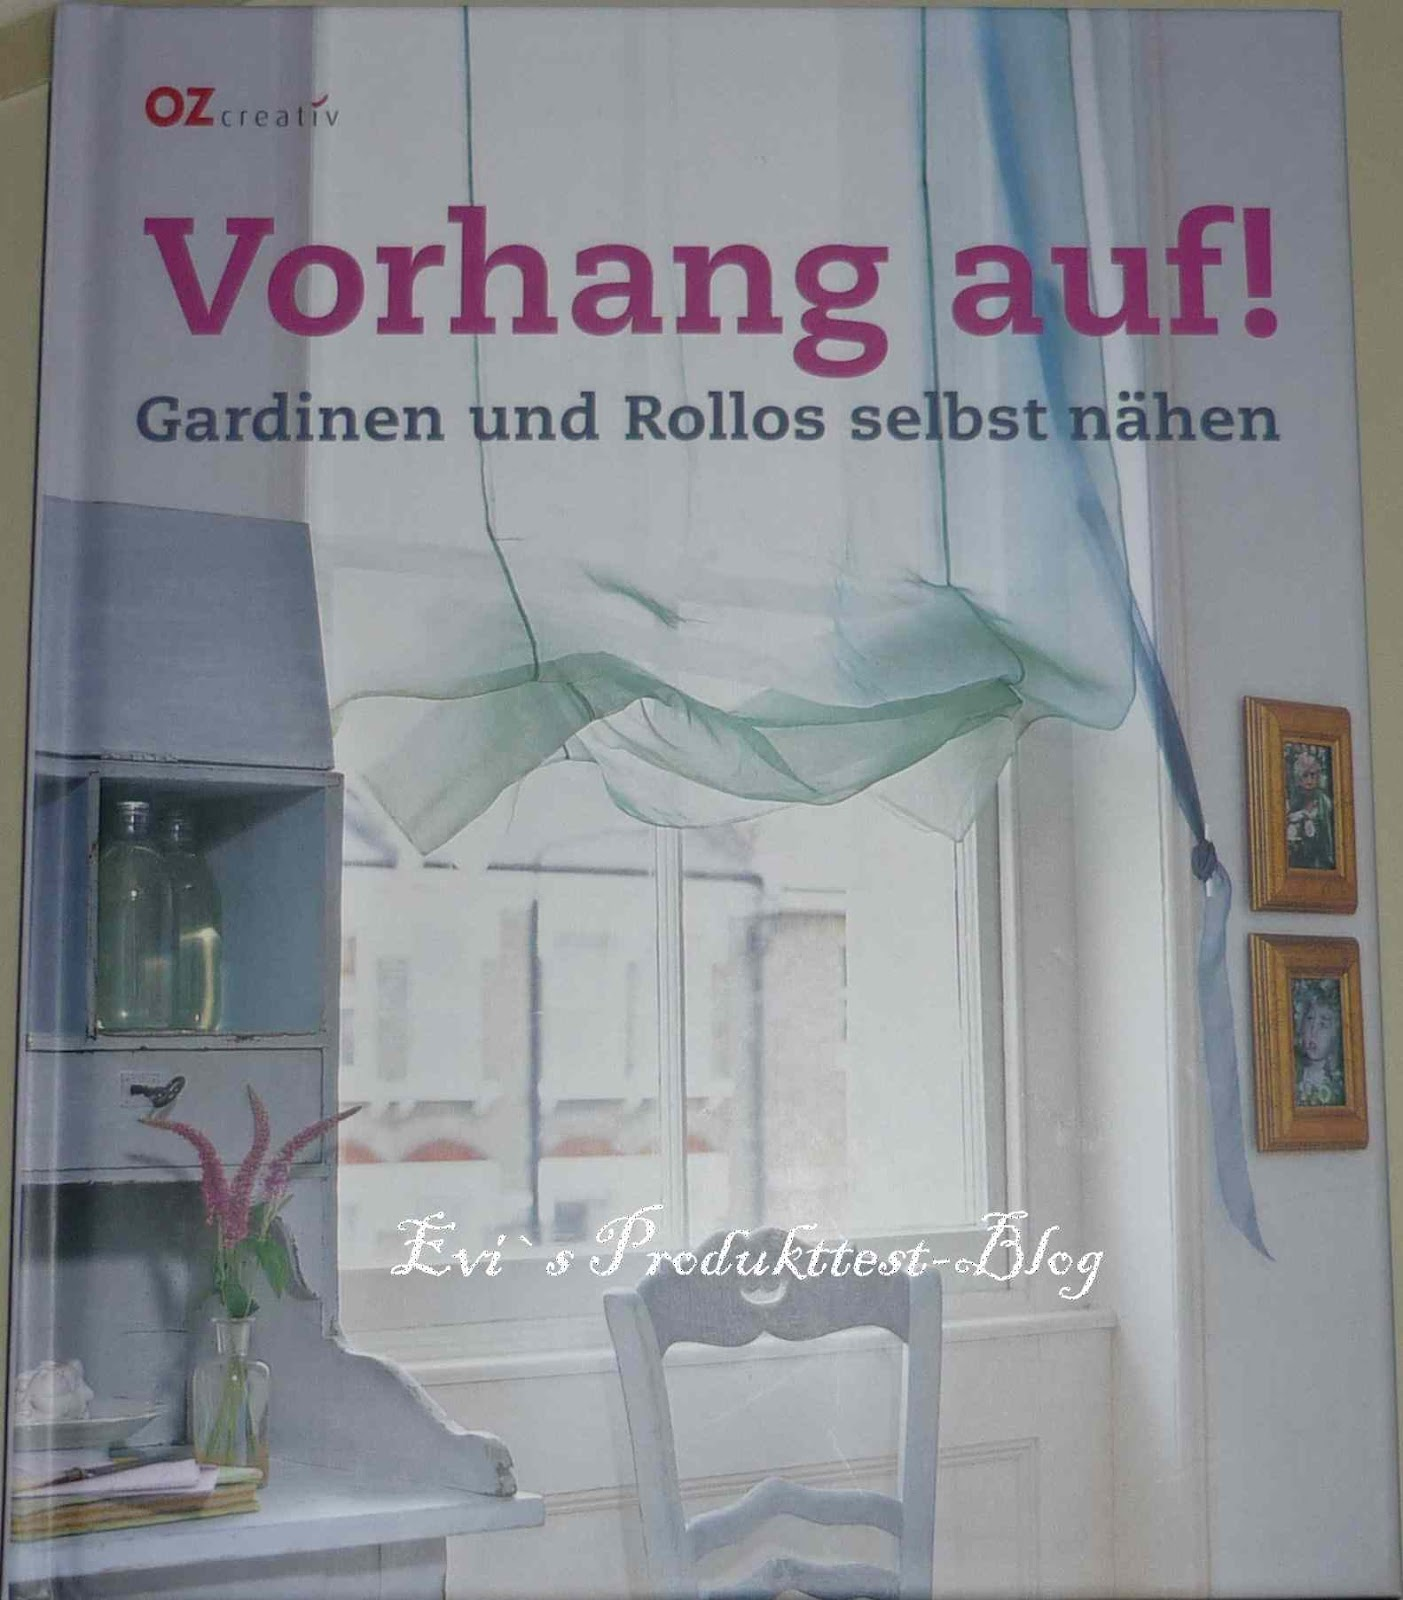 evi s produkttestblog buch vorhang auf gardinen und. Black Bedroom Furniture Sets. Home Design Ideas